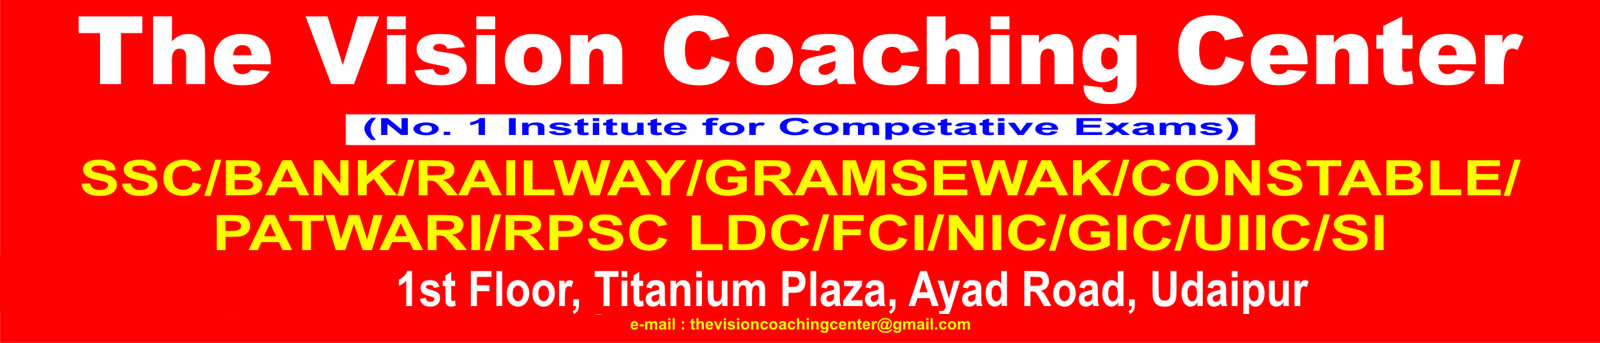 ssc-exam-coaching-center-in-udaipur